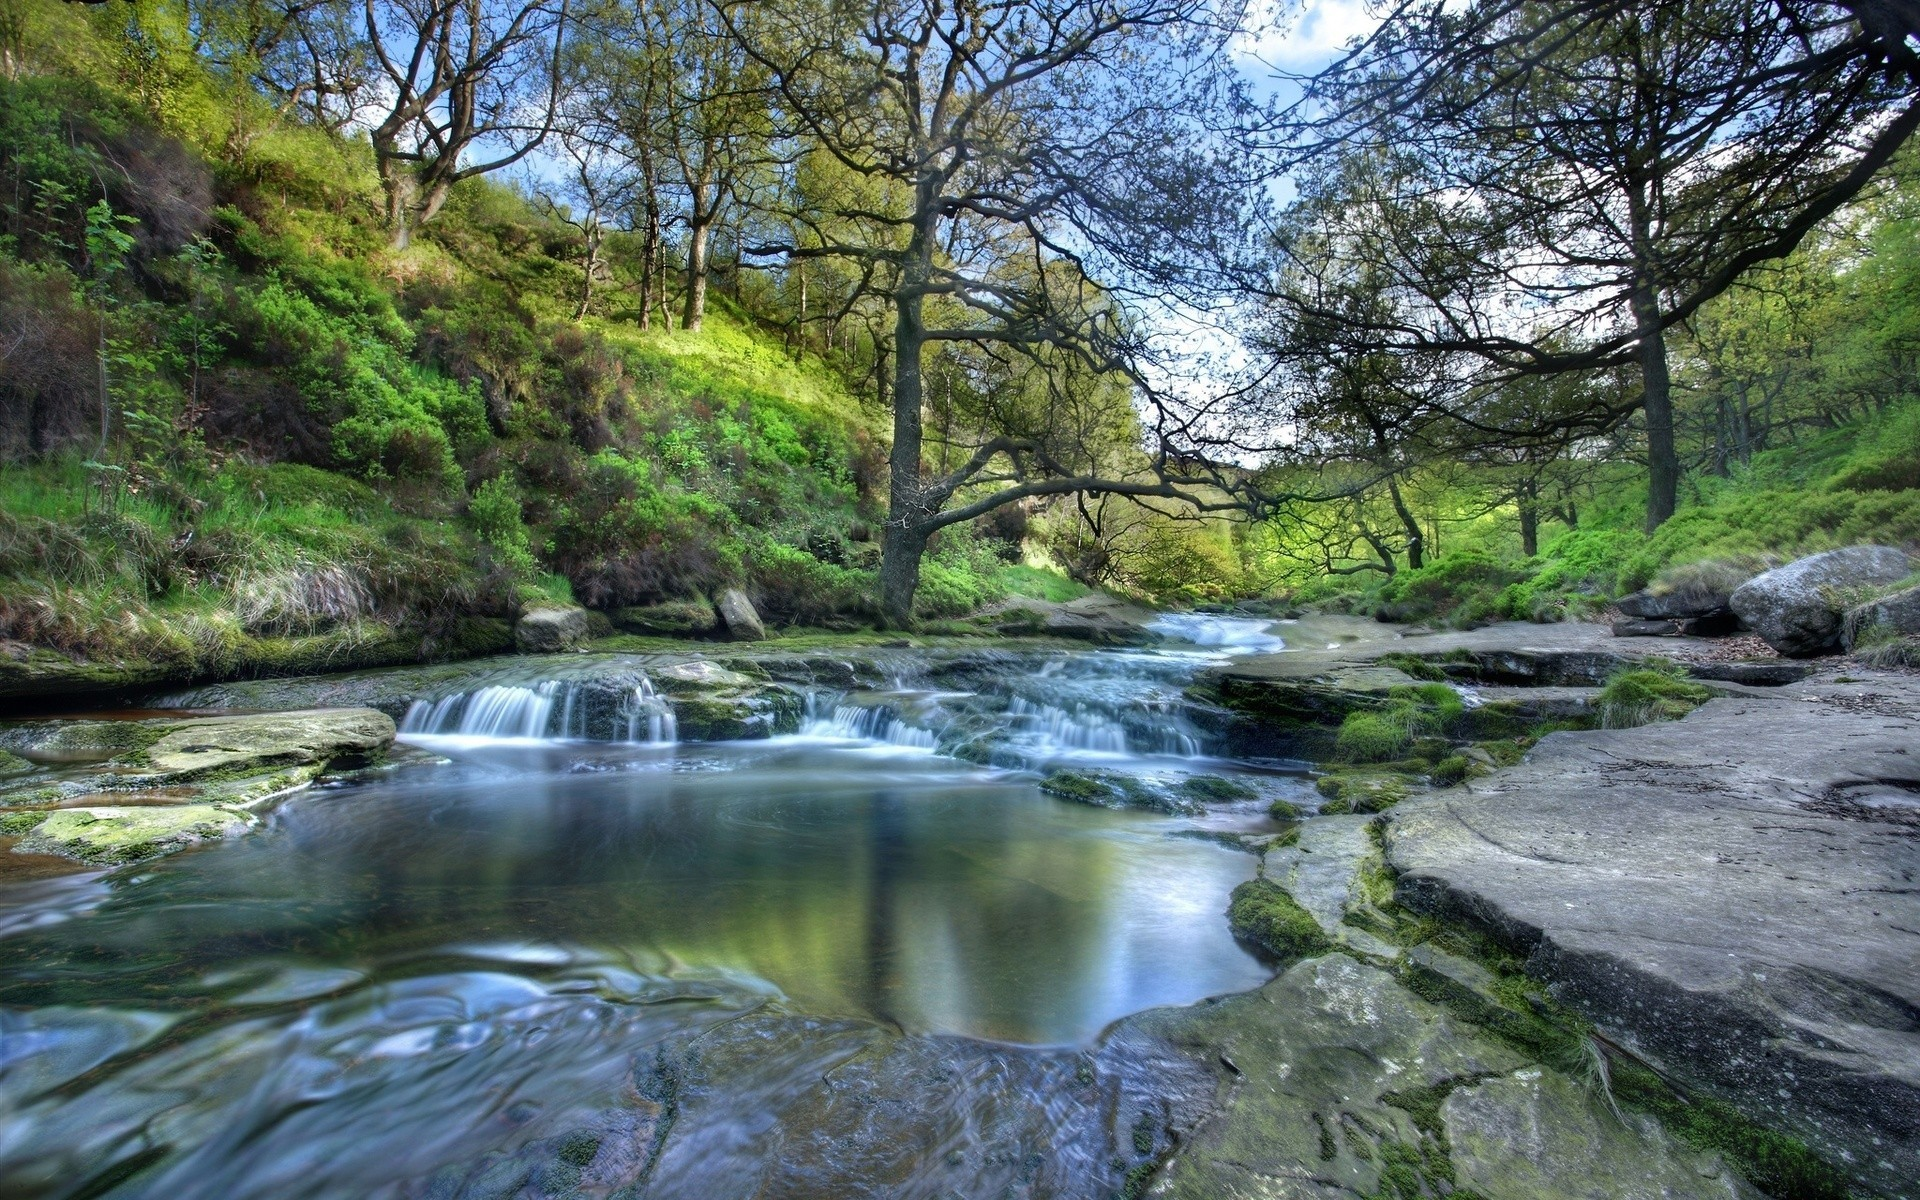 Hd Standard Wallpaper Peak District United Kingdom Landscapes Nature Wallpaper